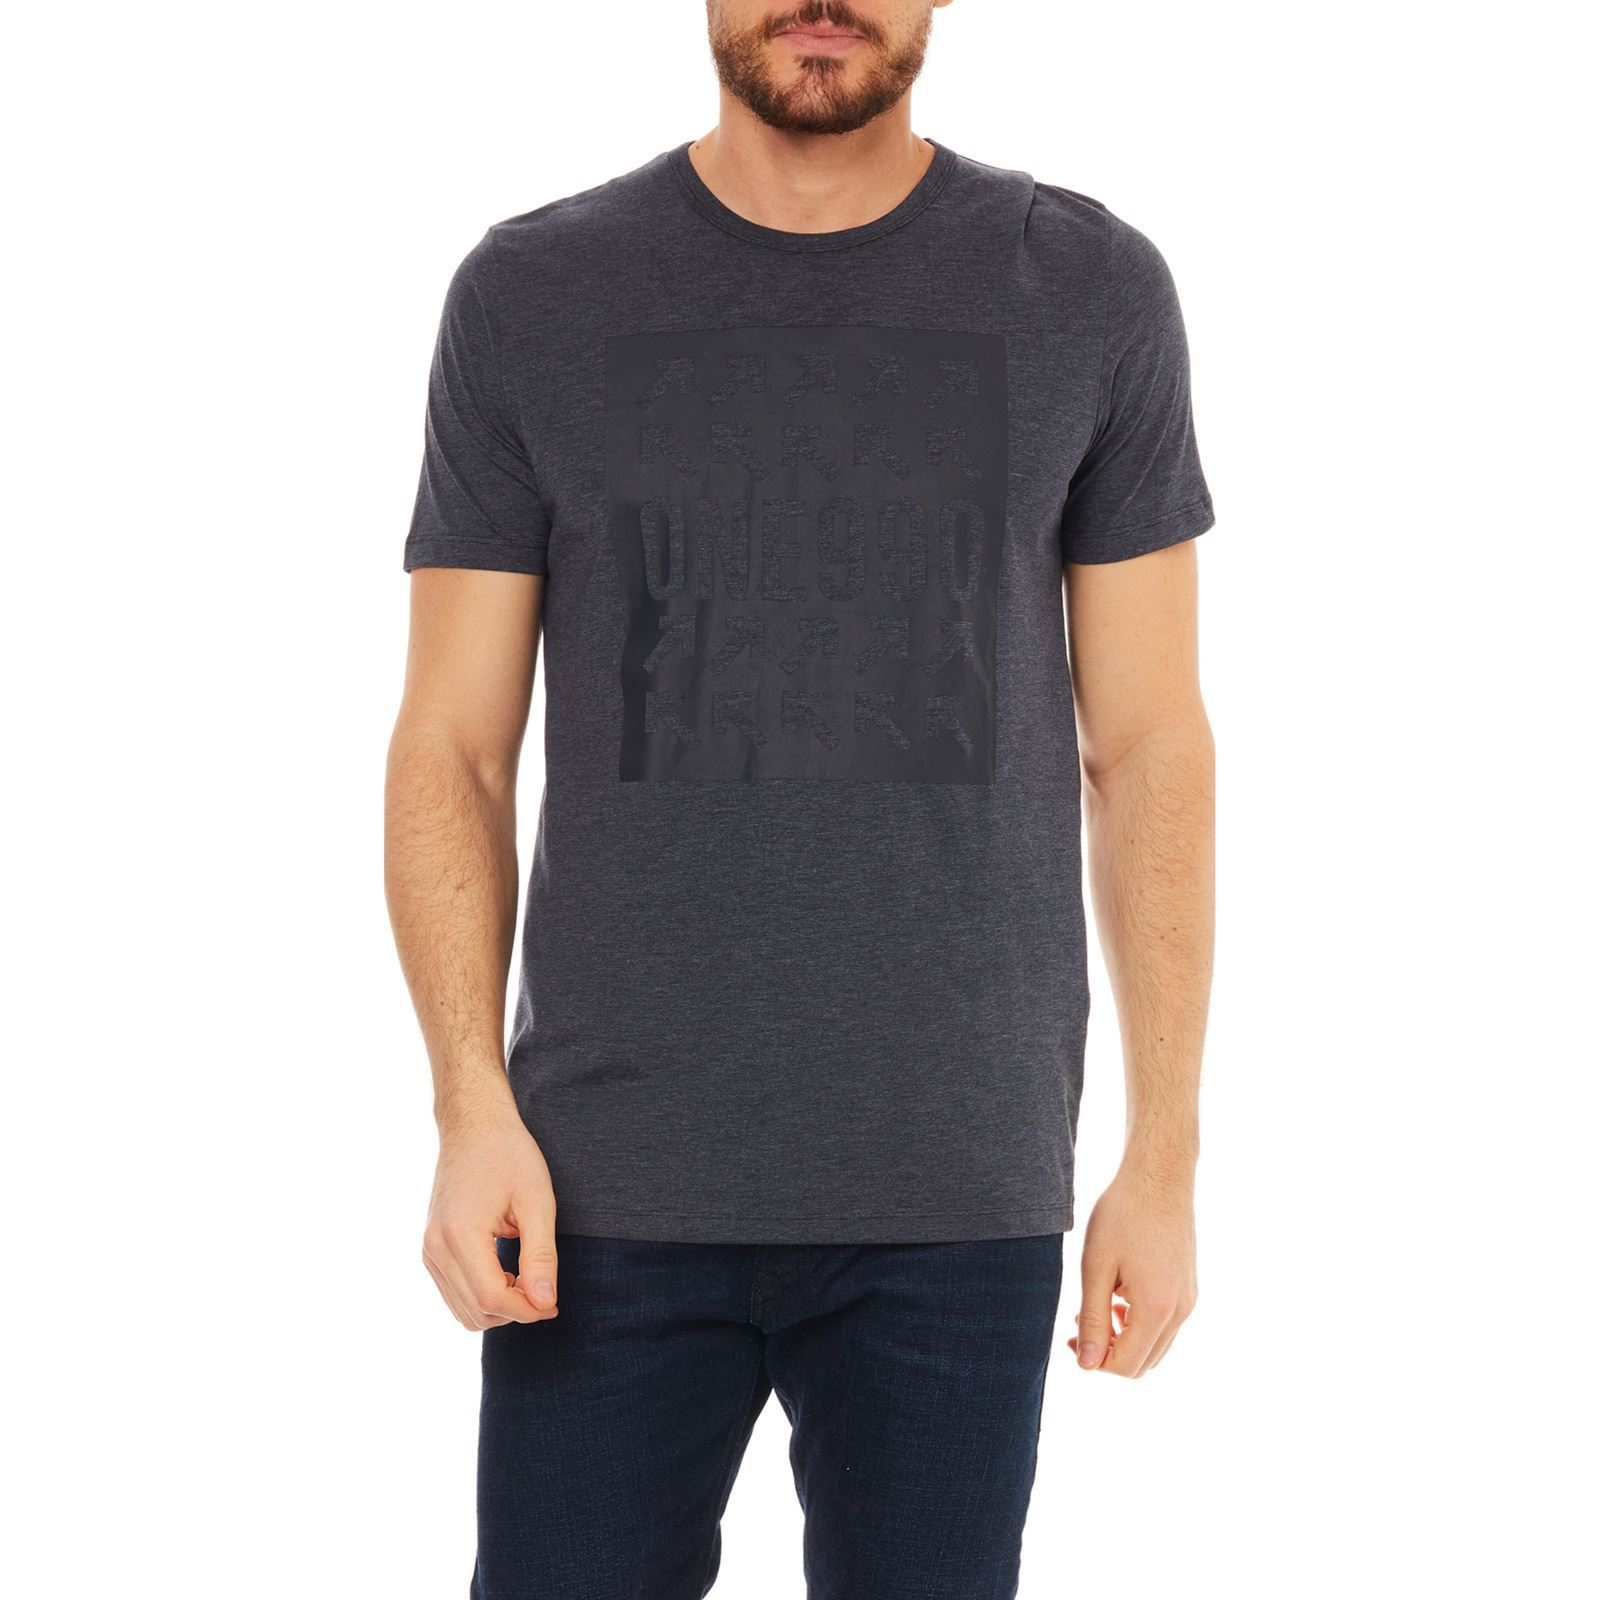 Jones Jackamp; CourtesBleu Manches V shirt Homme T Ciel kXwZulOPiT